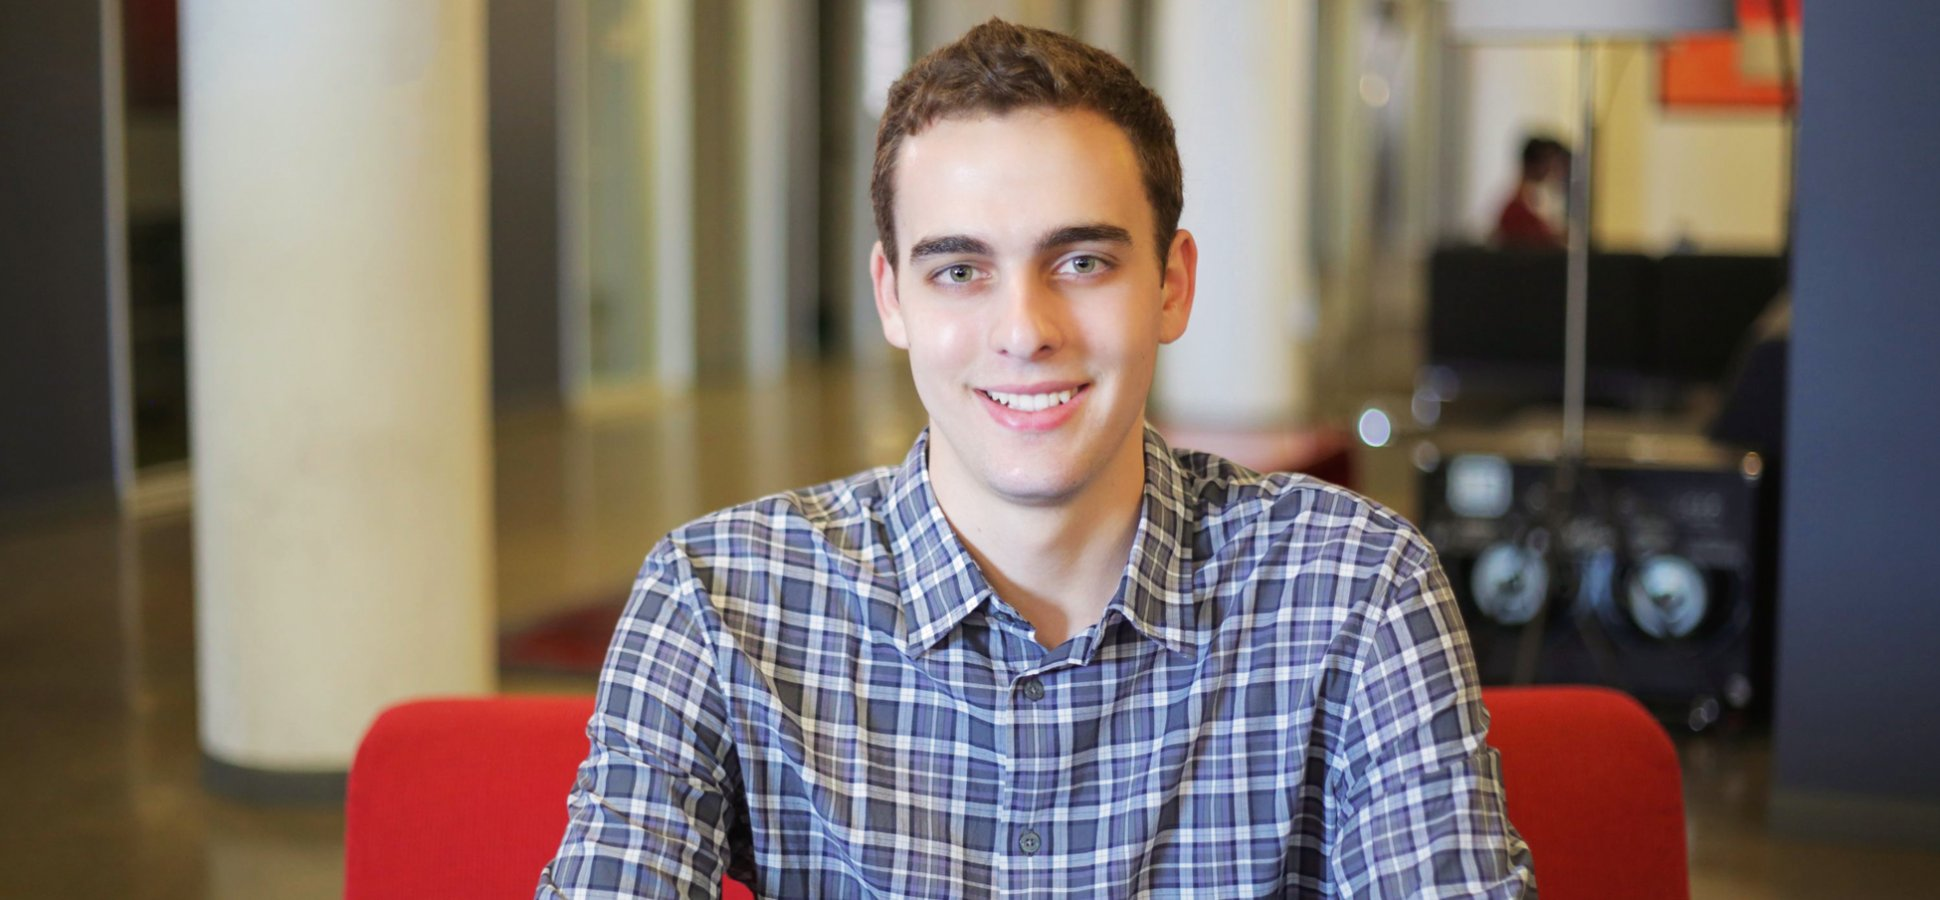 Meet the 24-Year-Old Founder of Deliverr, Walmart's Brand New Secret Weapon